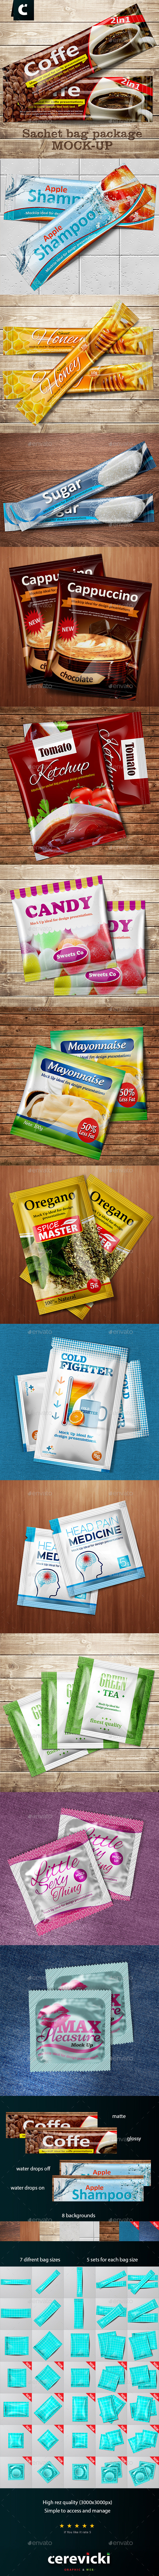 Sachet Foil bag package mock-up